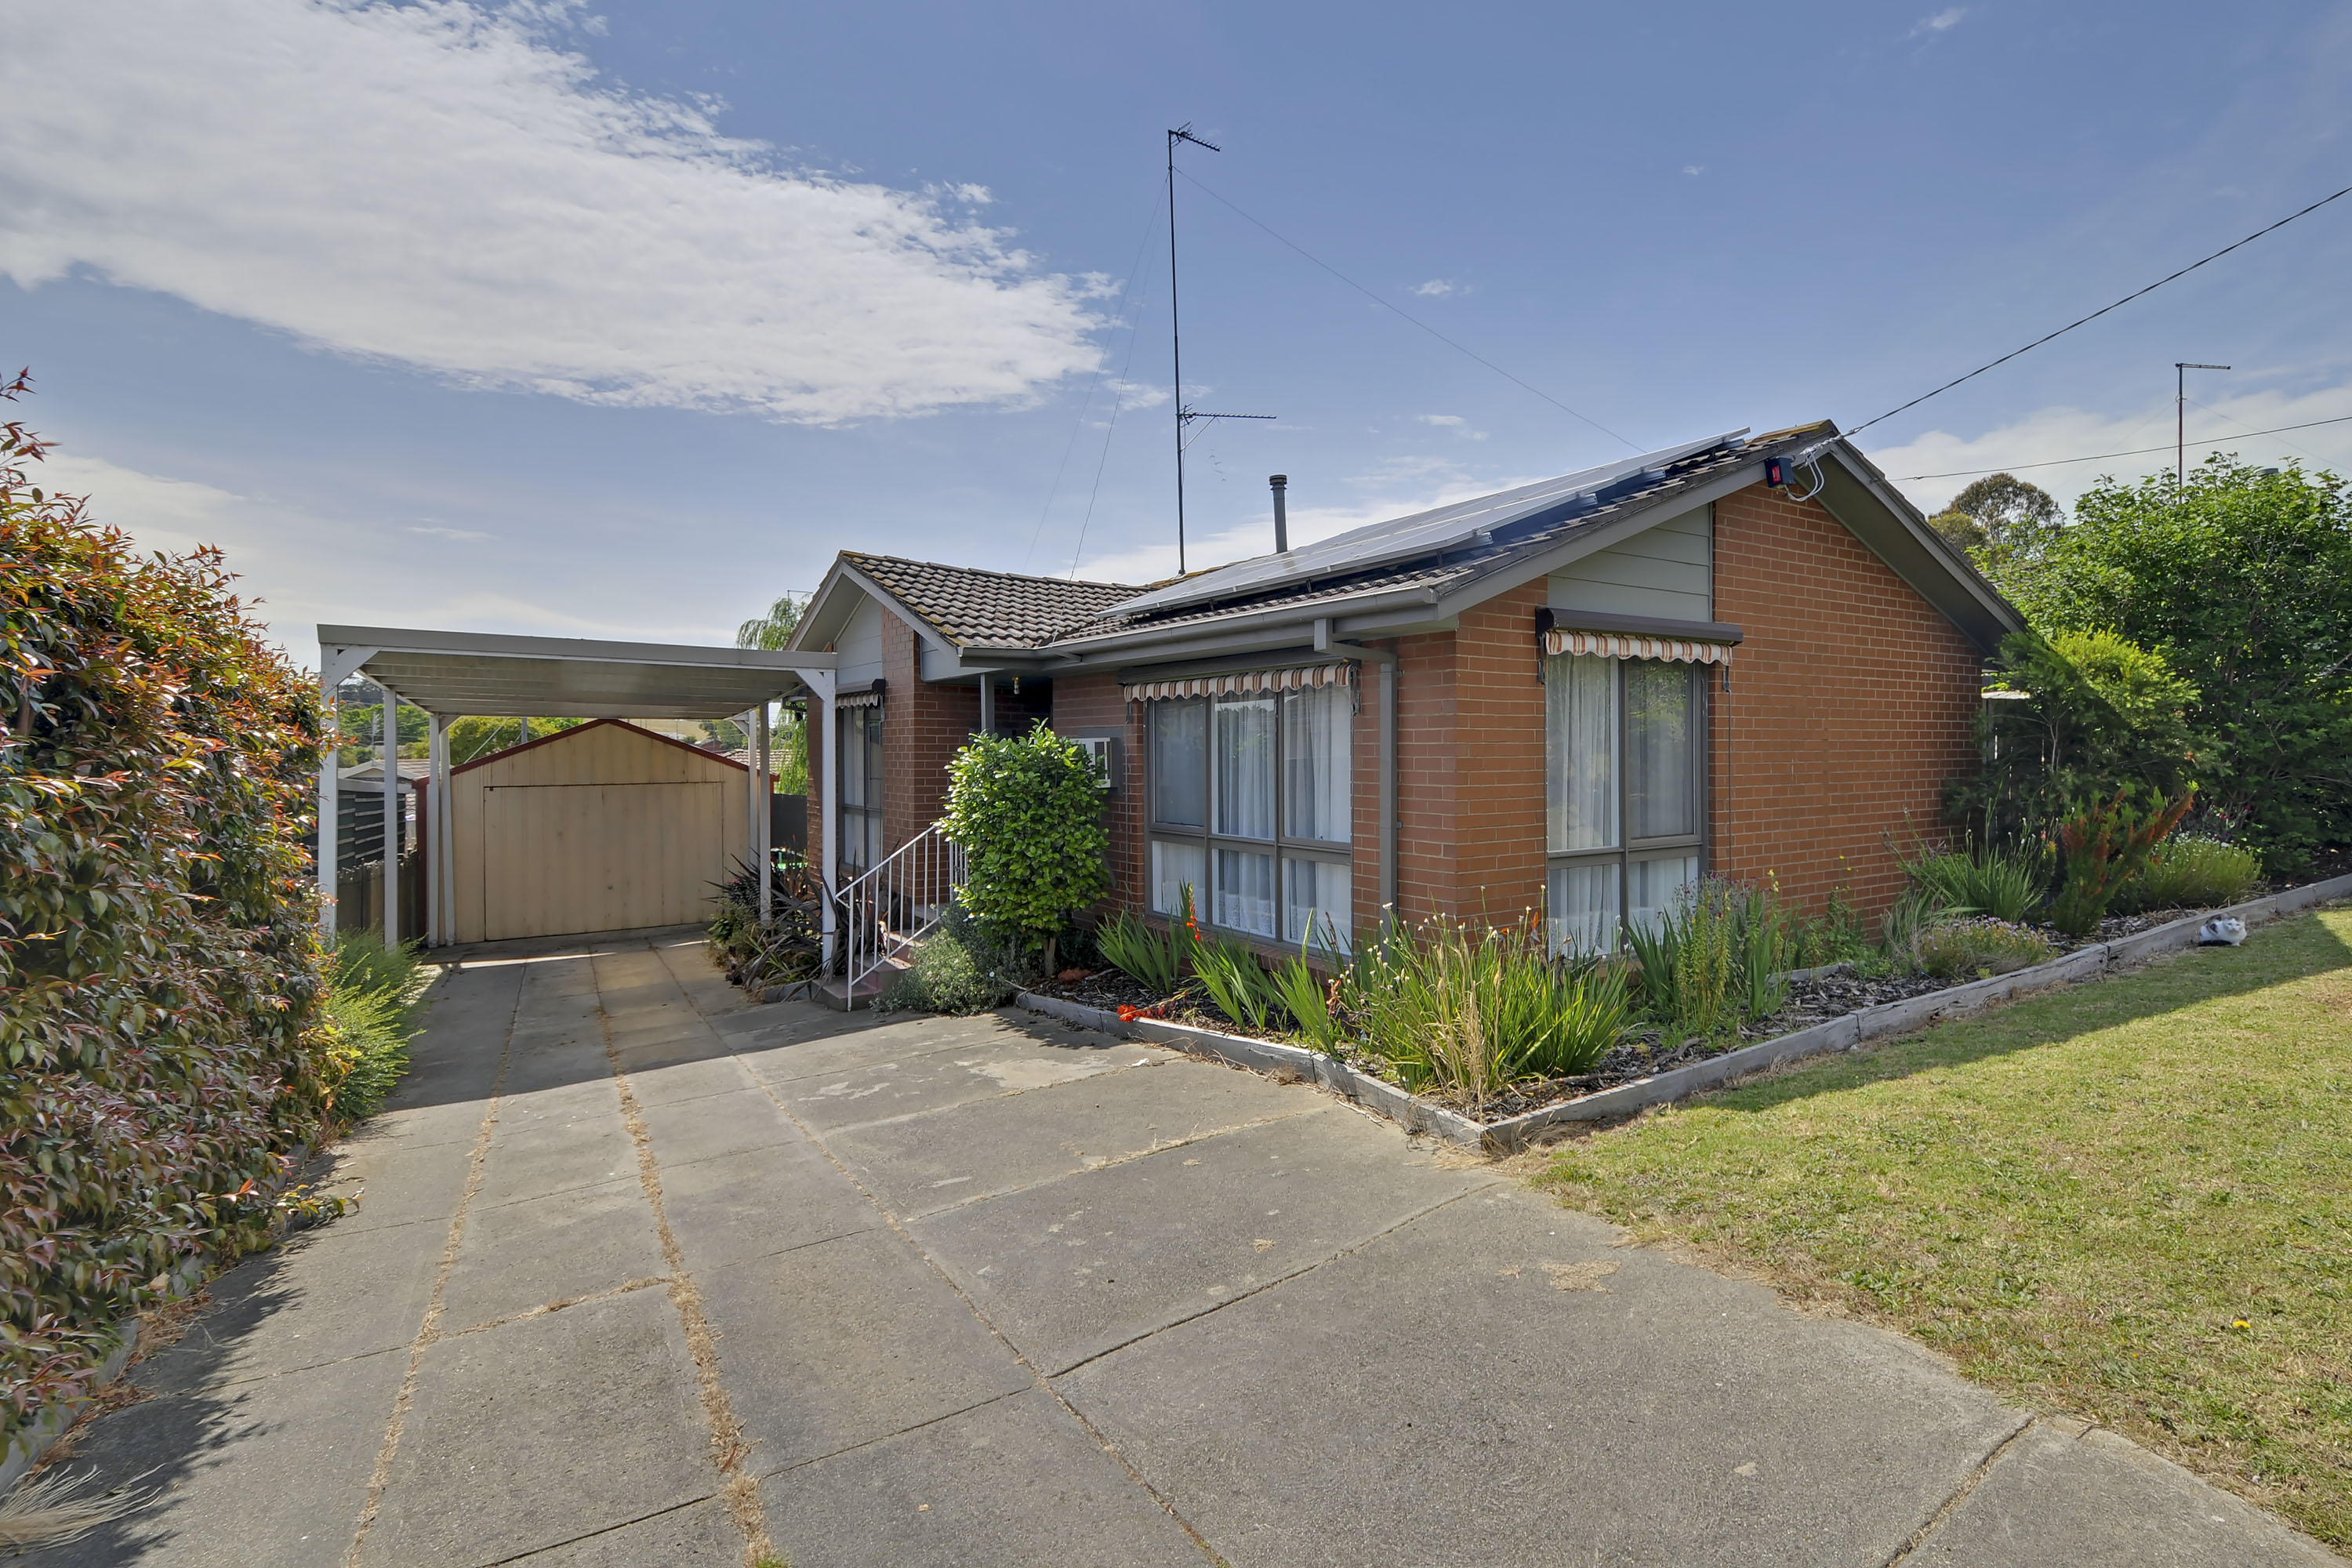 40 cameron street traralgon vic 3844 house for sale for Kitchen plus 2000 vs 3000